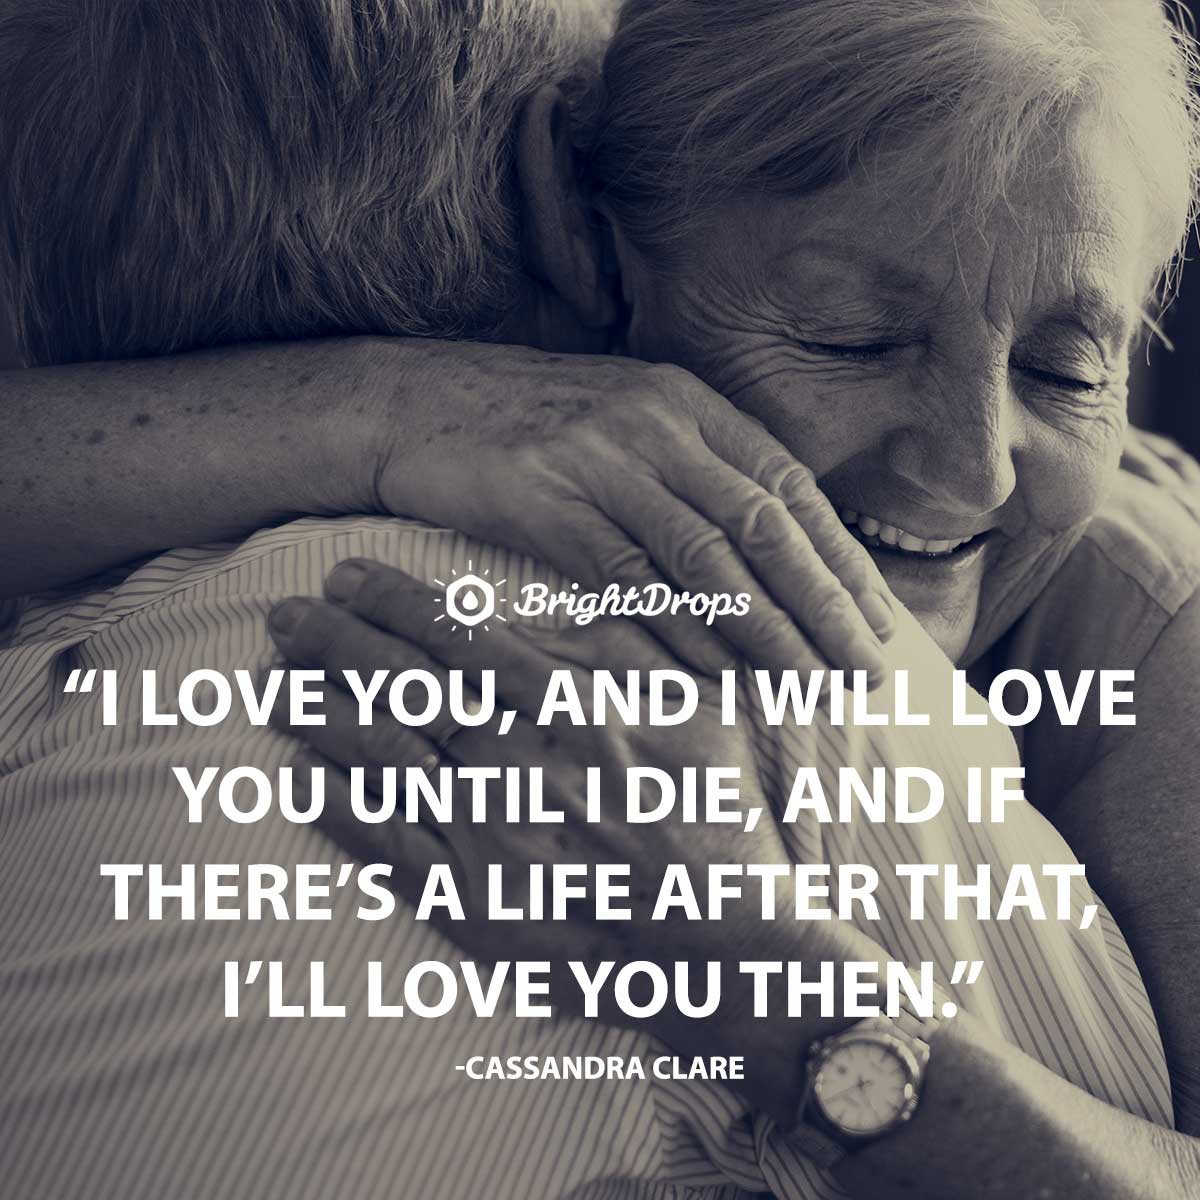 I love you, and I will love you until I die, and if there's a life after that, I'll love you then. -Cassandra Clare